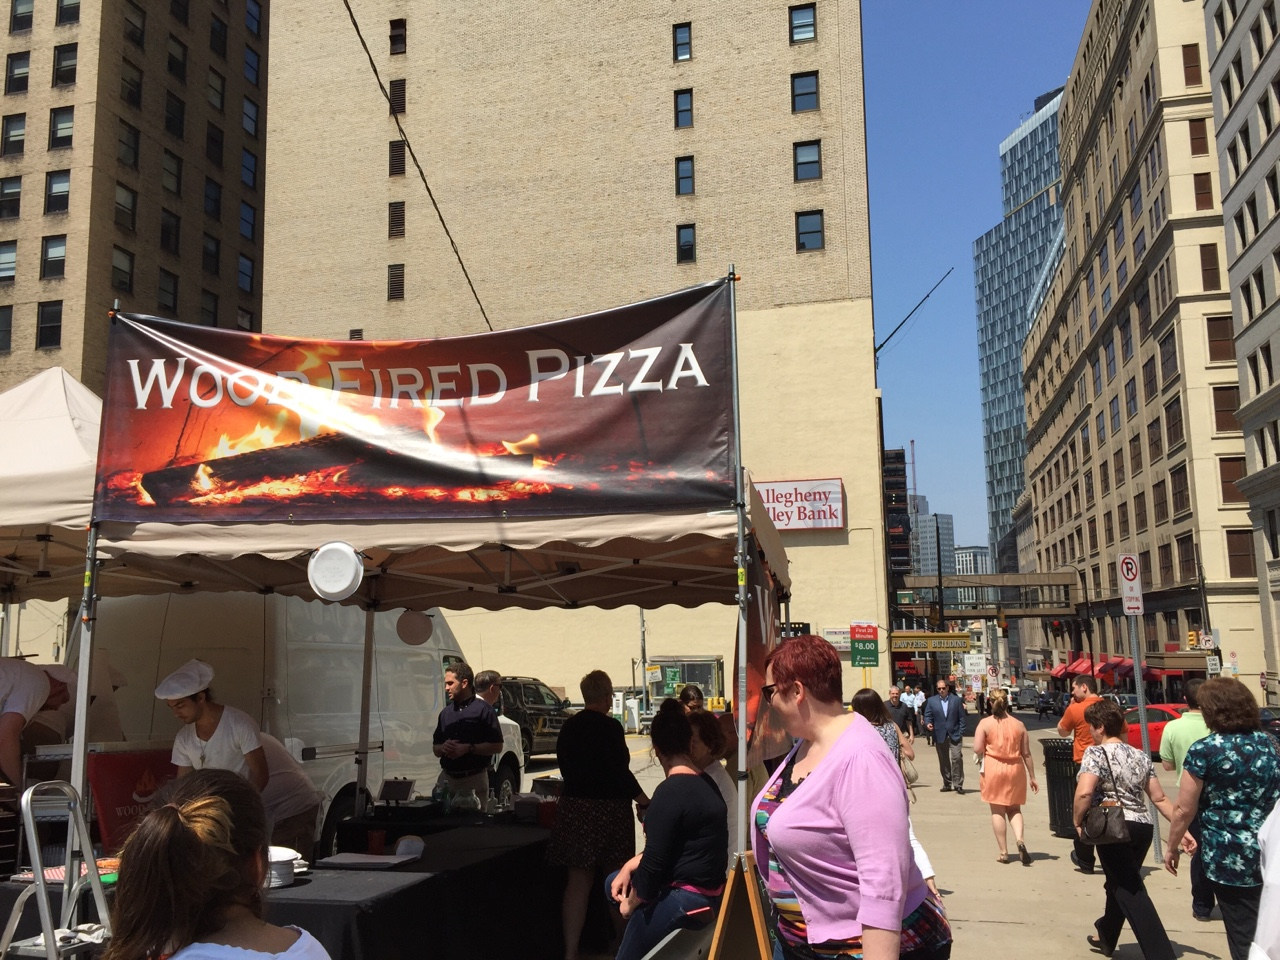 Pizzastand Oven Pop Up Wood Fired Pizza Stand Pizza Walk With Me